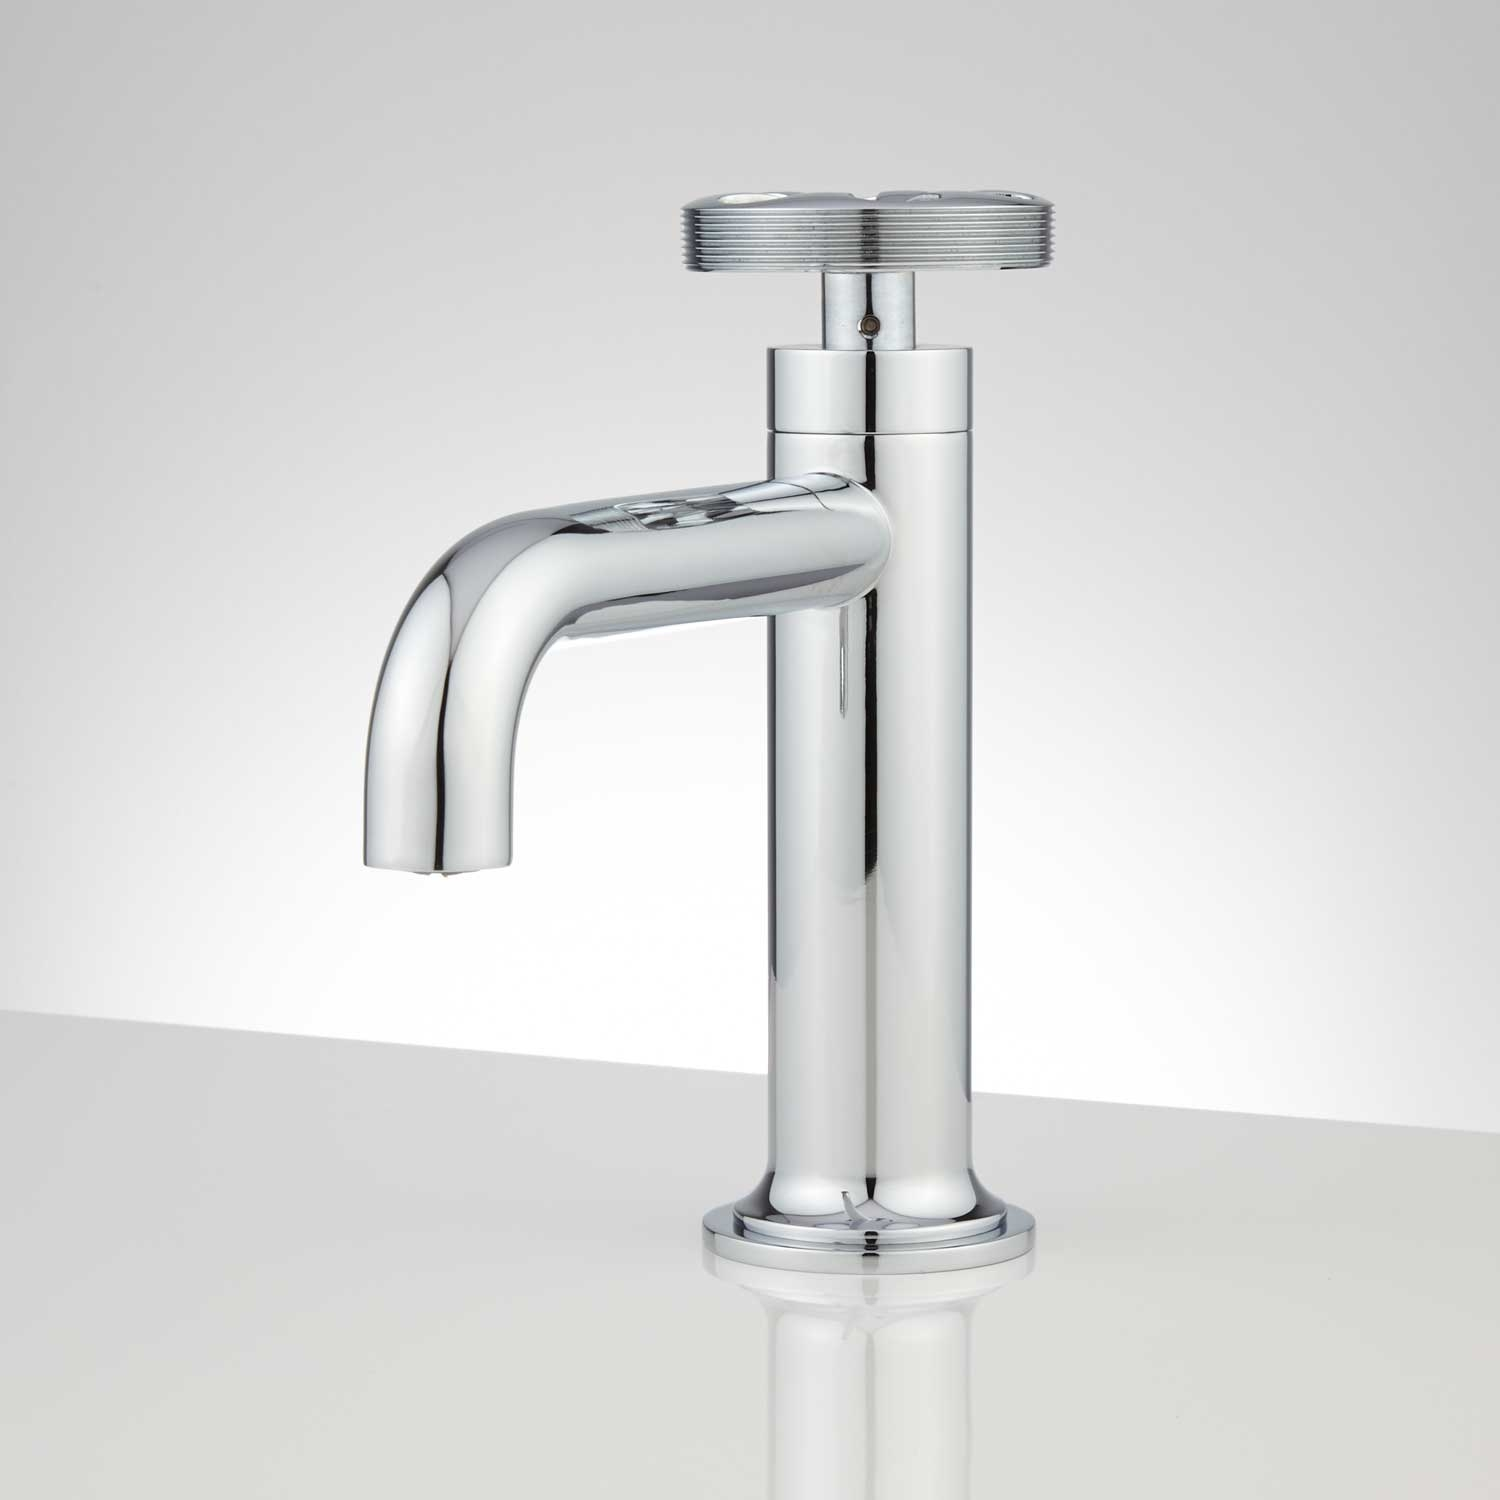 Ideas, solid brass bath faucets solid brass bath faucets bathroom solid brass faucet signature hardware 1500 x 1500 2  .